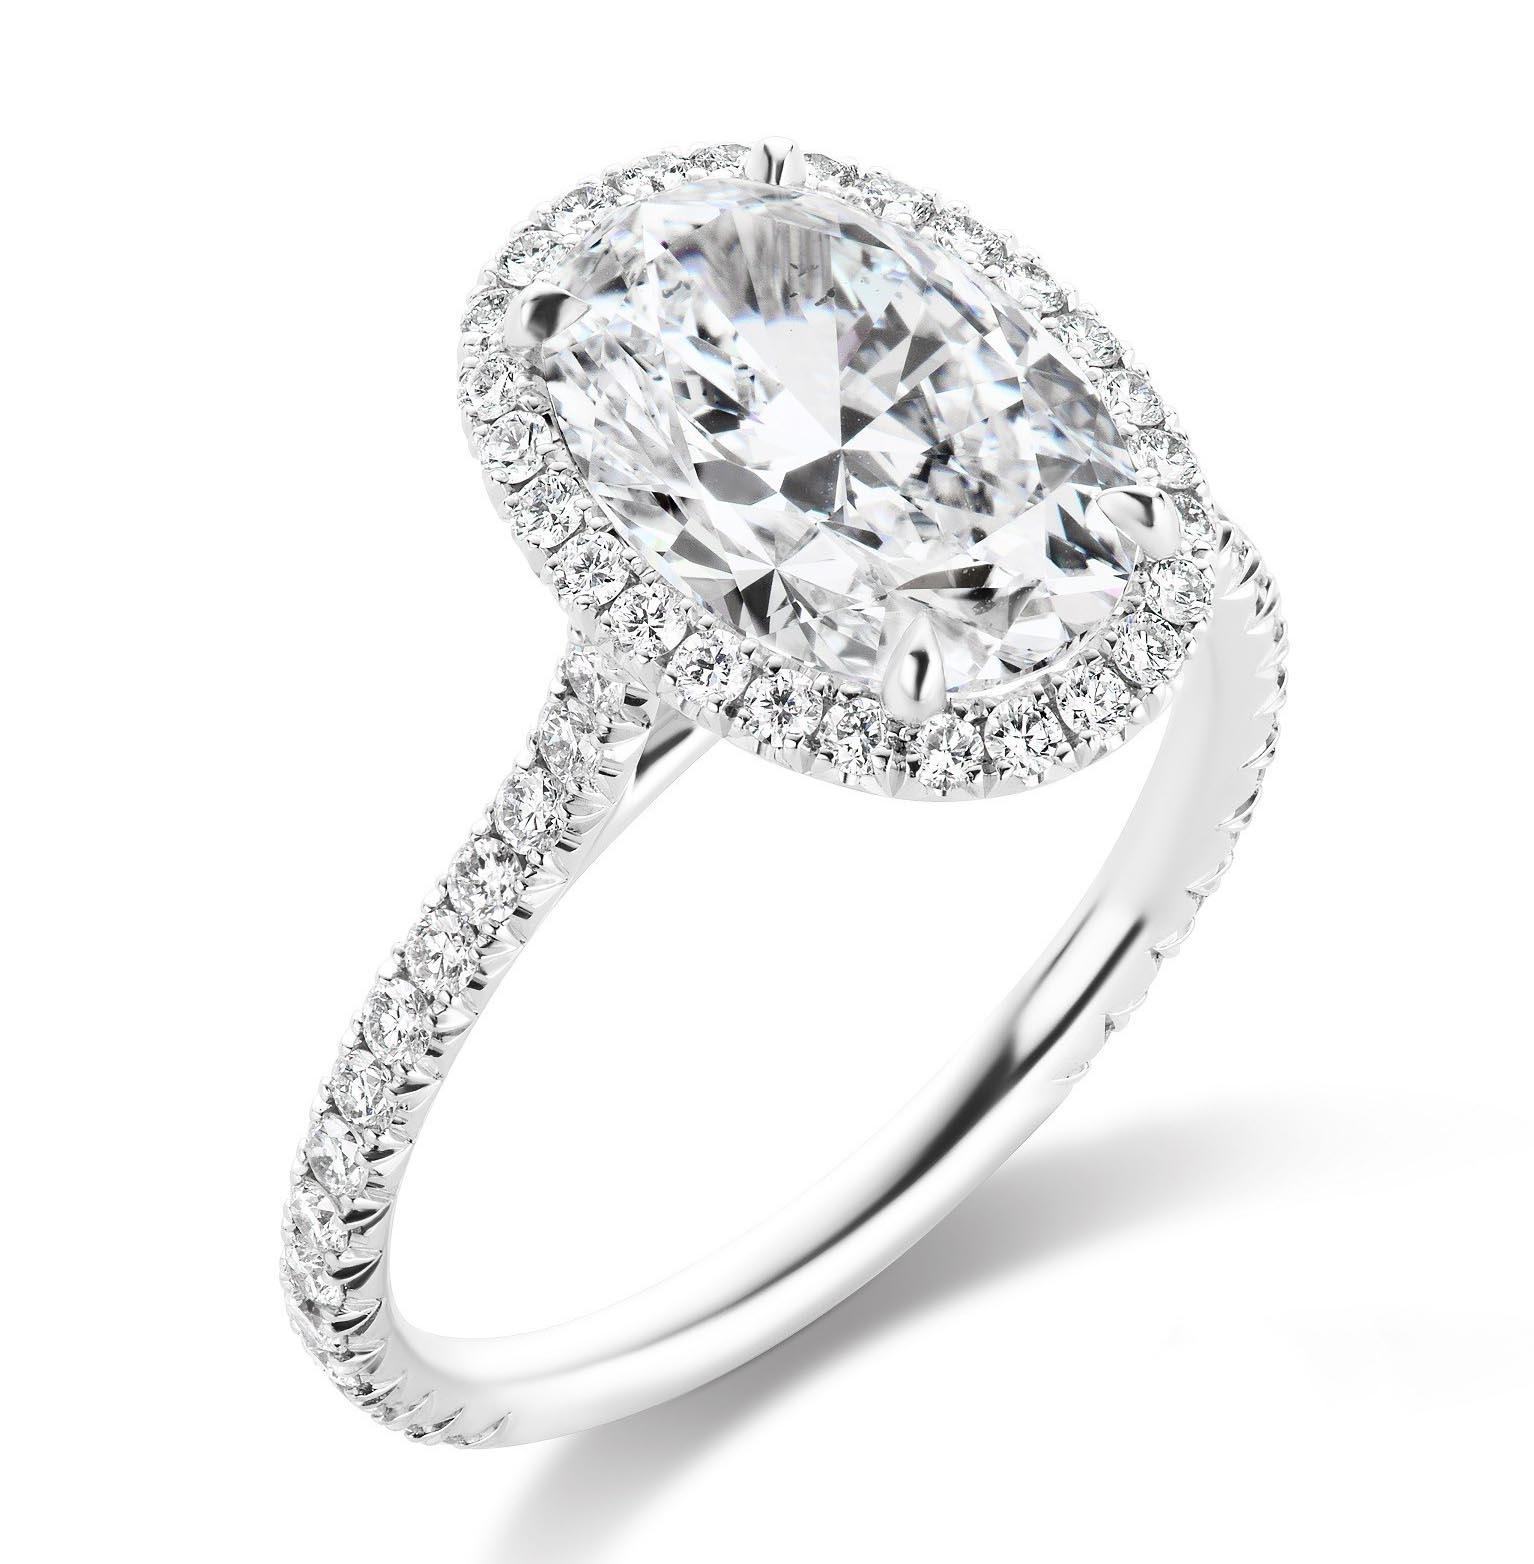 Fsi1 Oval Brilliant Solitaire Halo 250ct In Platinum. .925 Engagement Rings. 2015 Gold Engagement Rings. Goblin Wedding Rings. Indian Engagement Rings. Side Stone Wedding Rings. Gypsy Rings. New Wedding Rings. Design Woman Wedding Rings